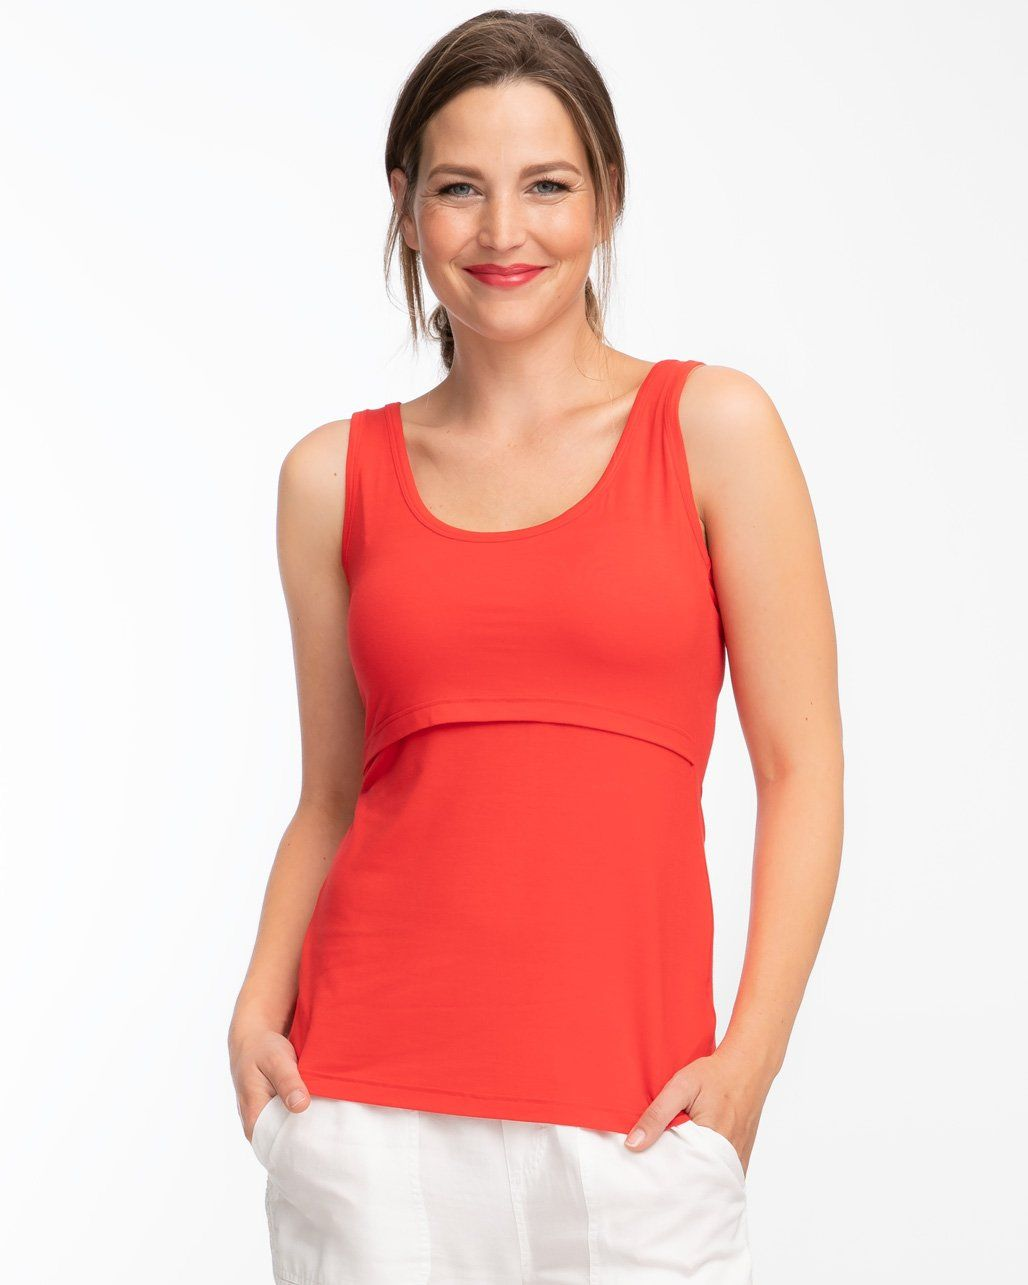 1a93adbcbf Candy Red Nursing Tank in 2019 | Products | Nursing tank, Red candy ...